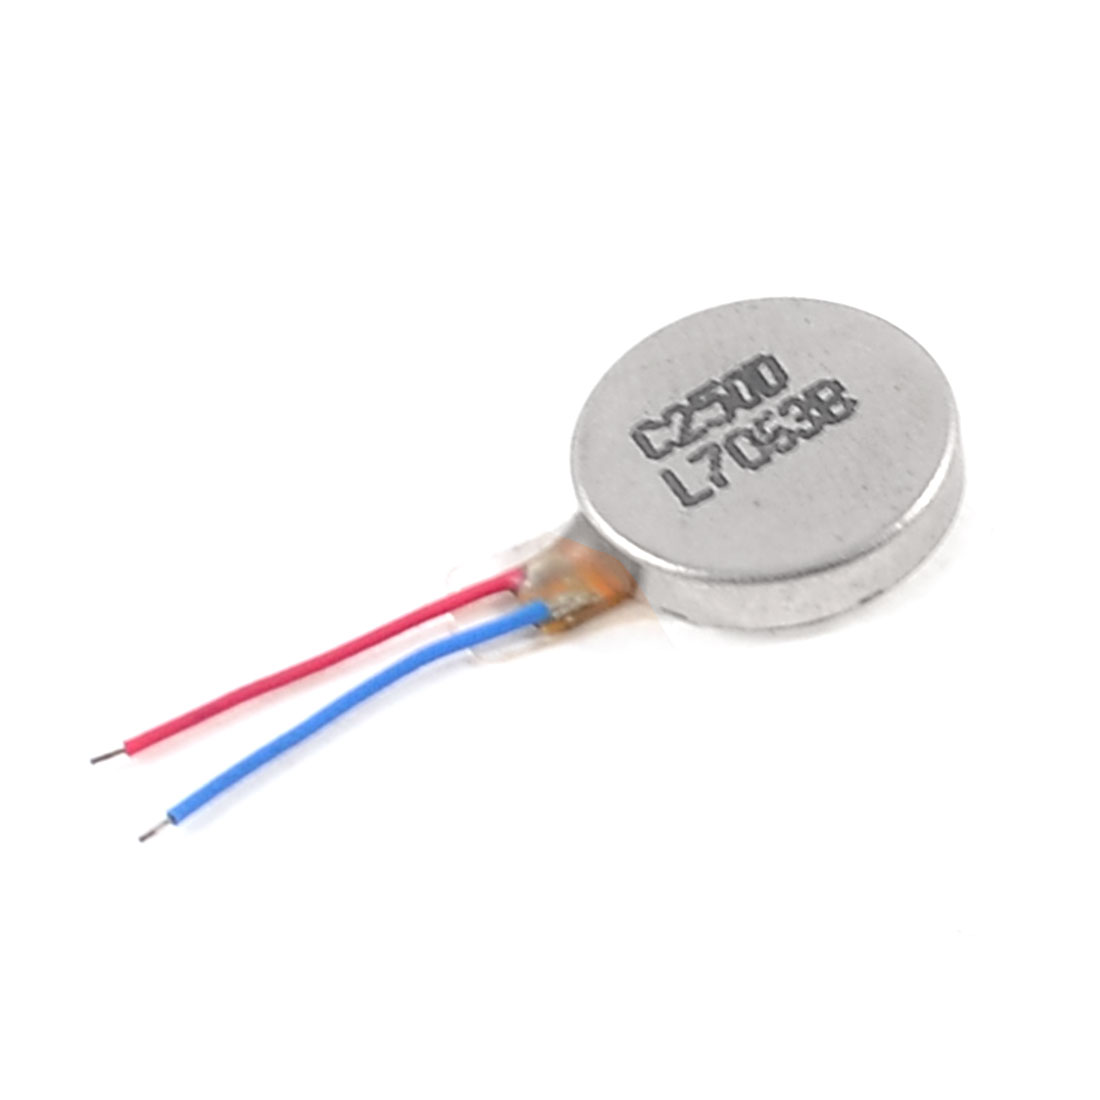 12mm-x-3mm-Cellphone-Vibrating-Vibration-DC-Micro-Motor-3V-60mA-9000-2000RPM